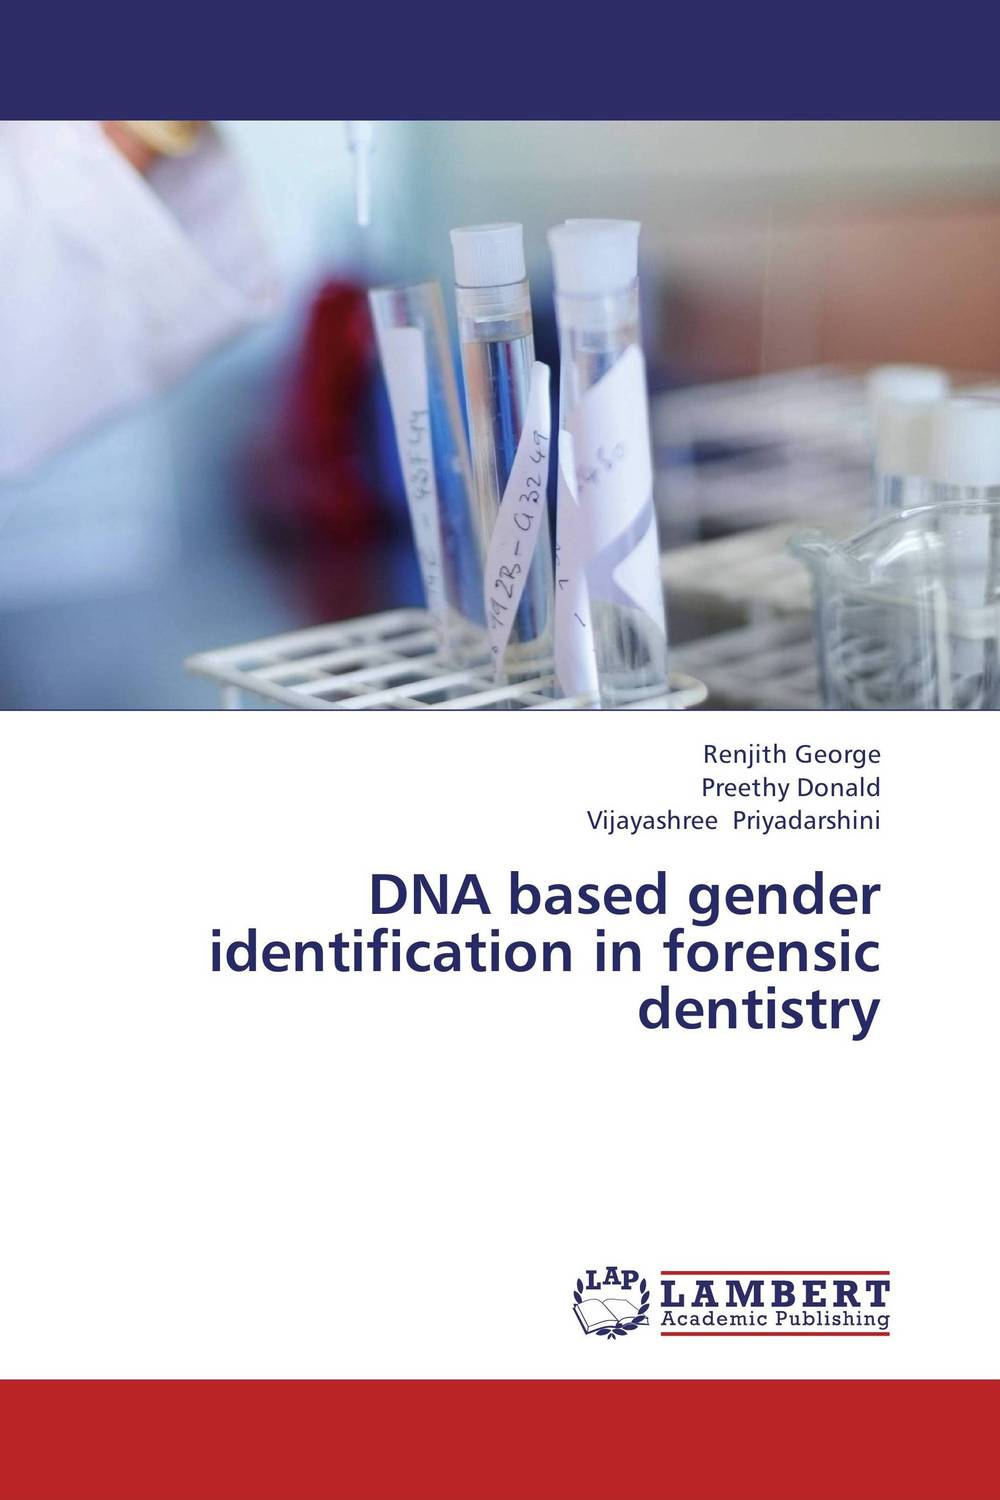 DNA based gender identification in forensic dentistry karanprakash singh ramanpreet kaur bhullar and sumit kochhar forensic dentistry teeth and their secrets